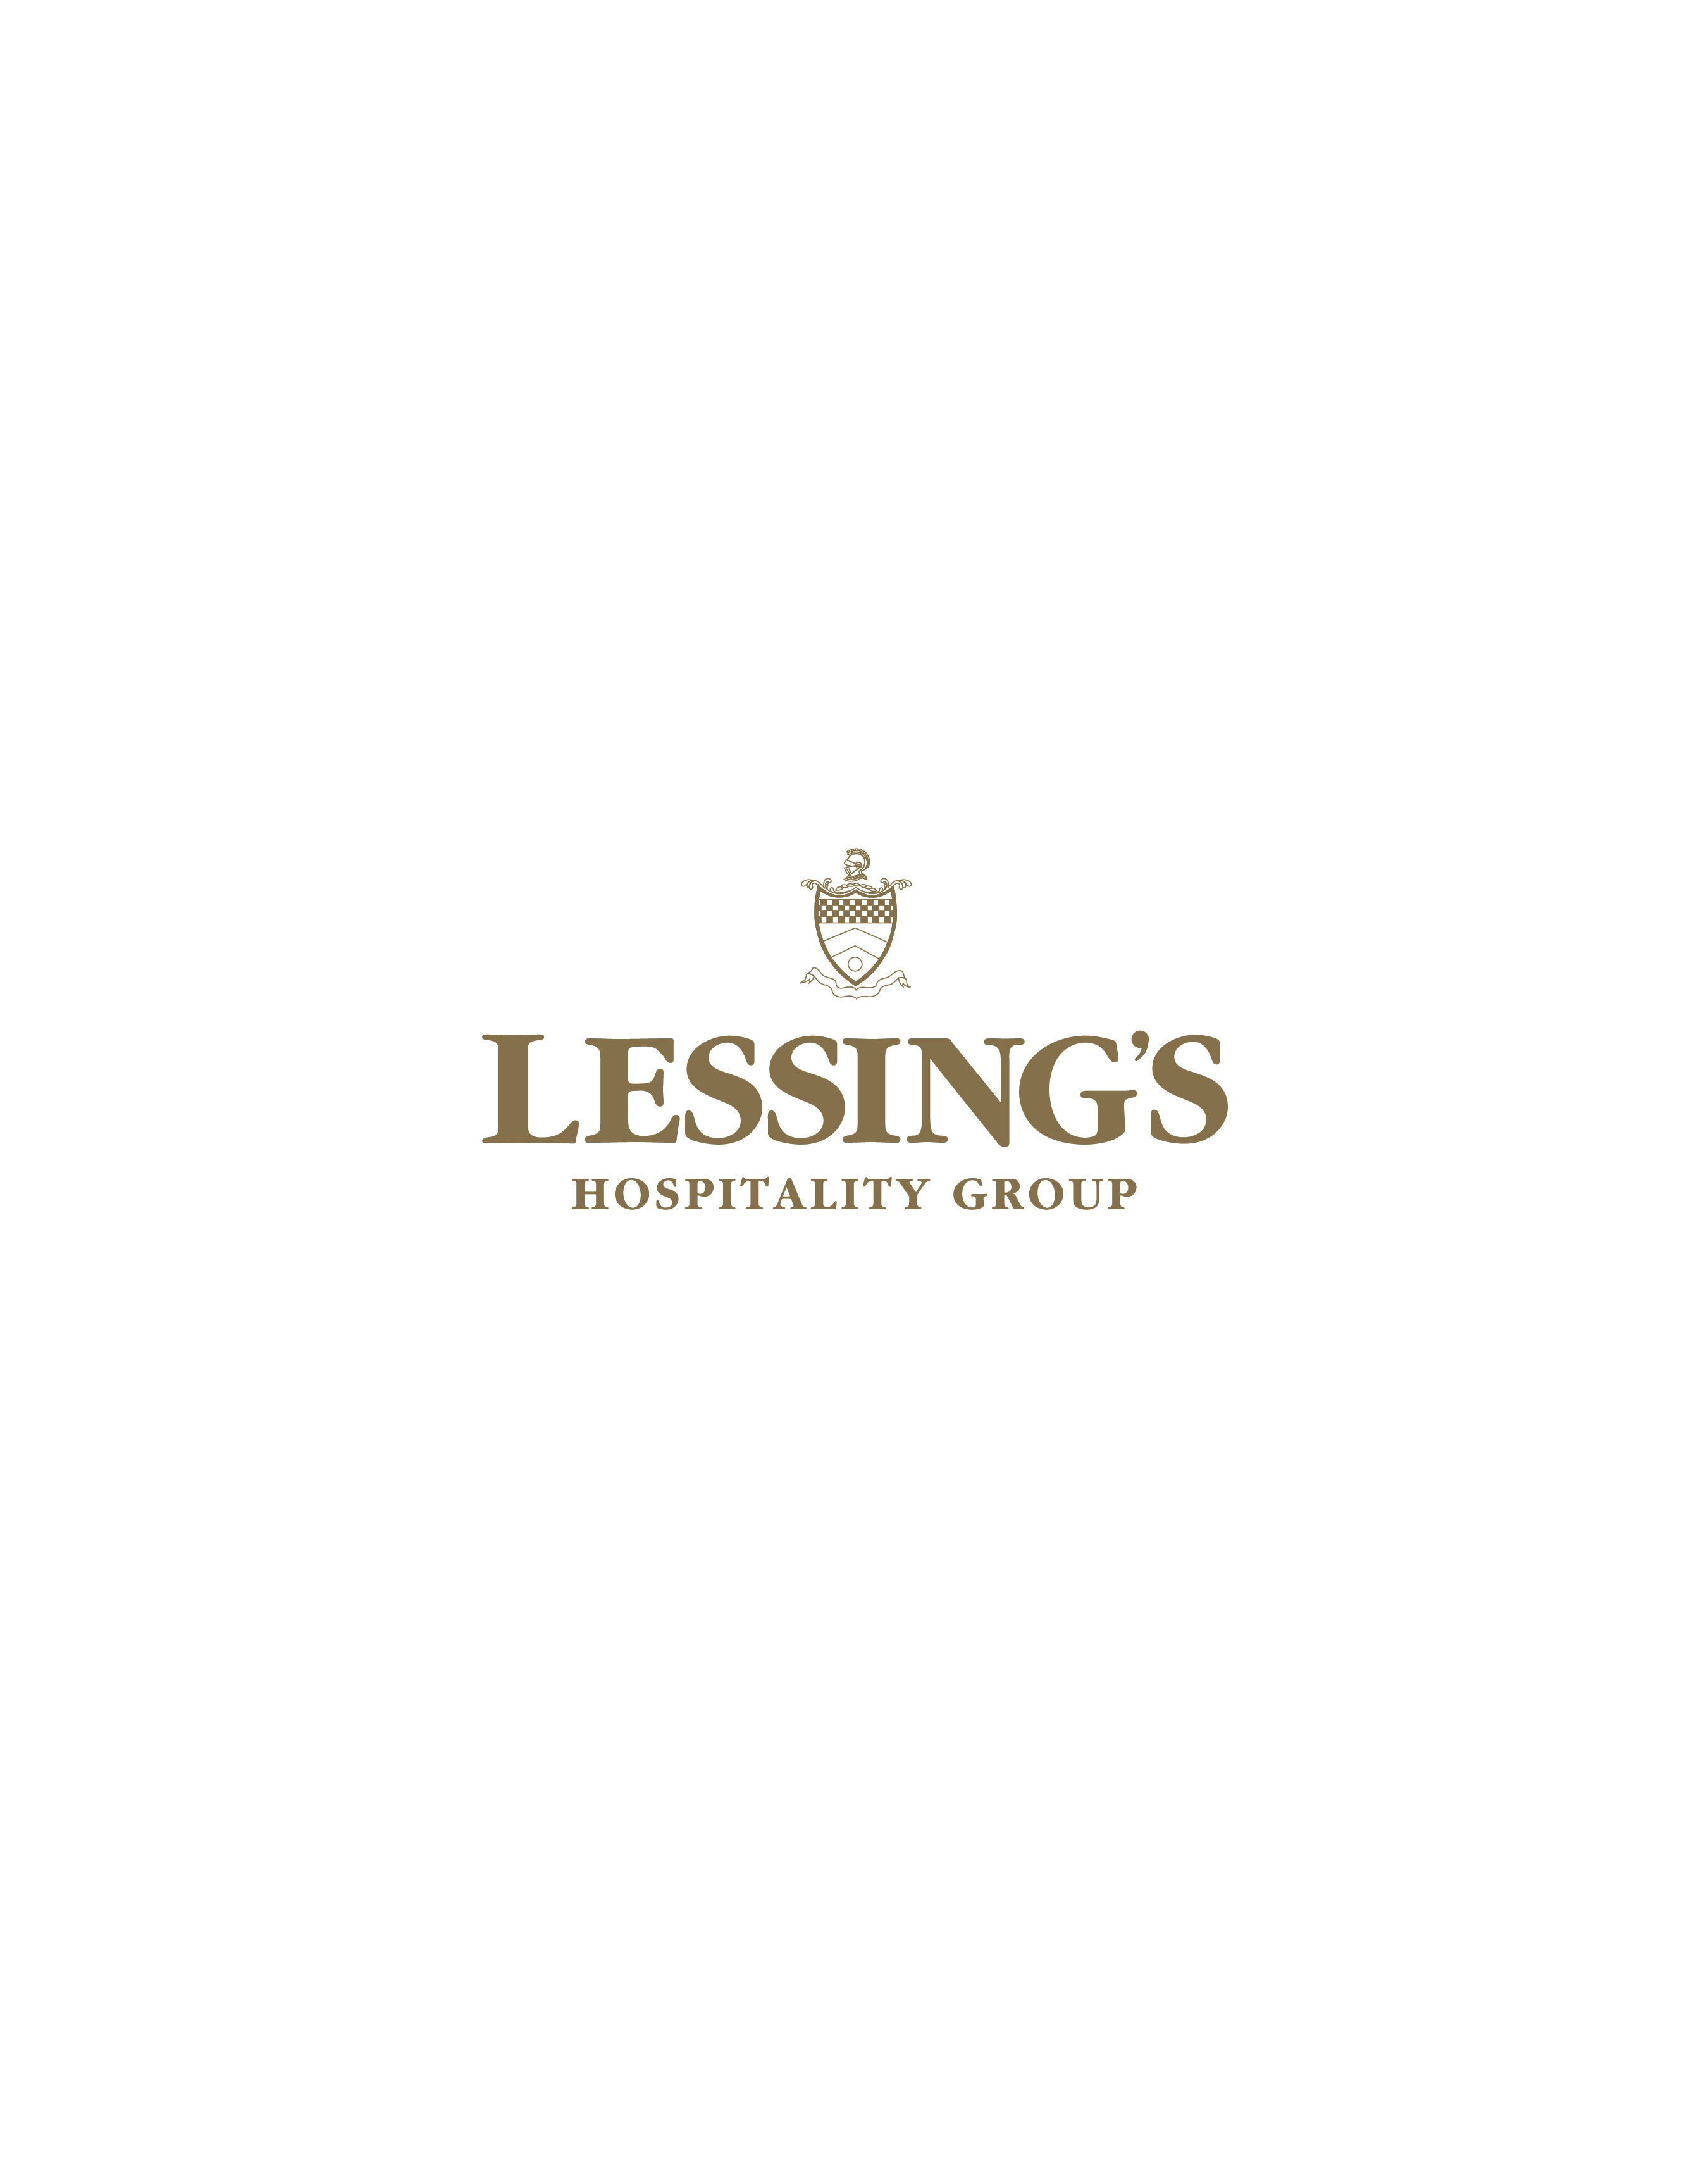 Lessing's